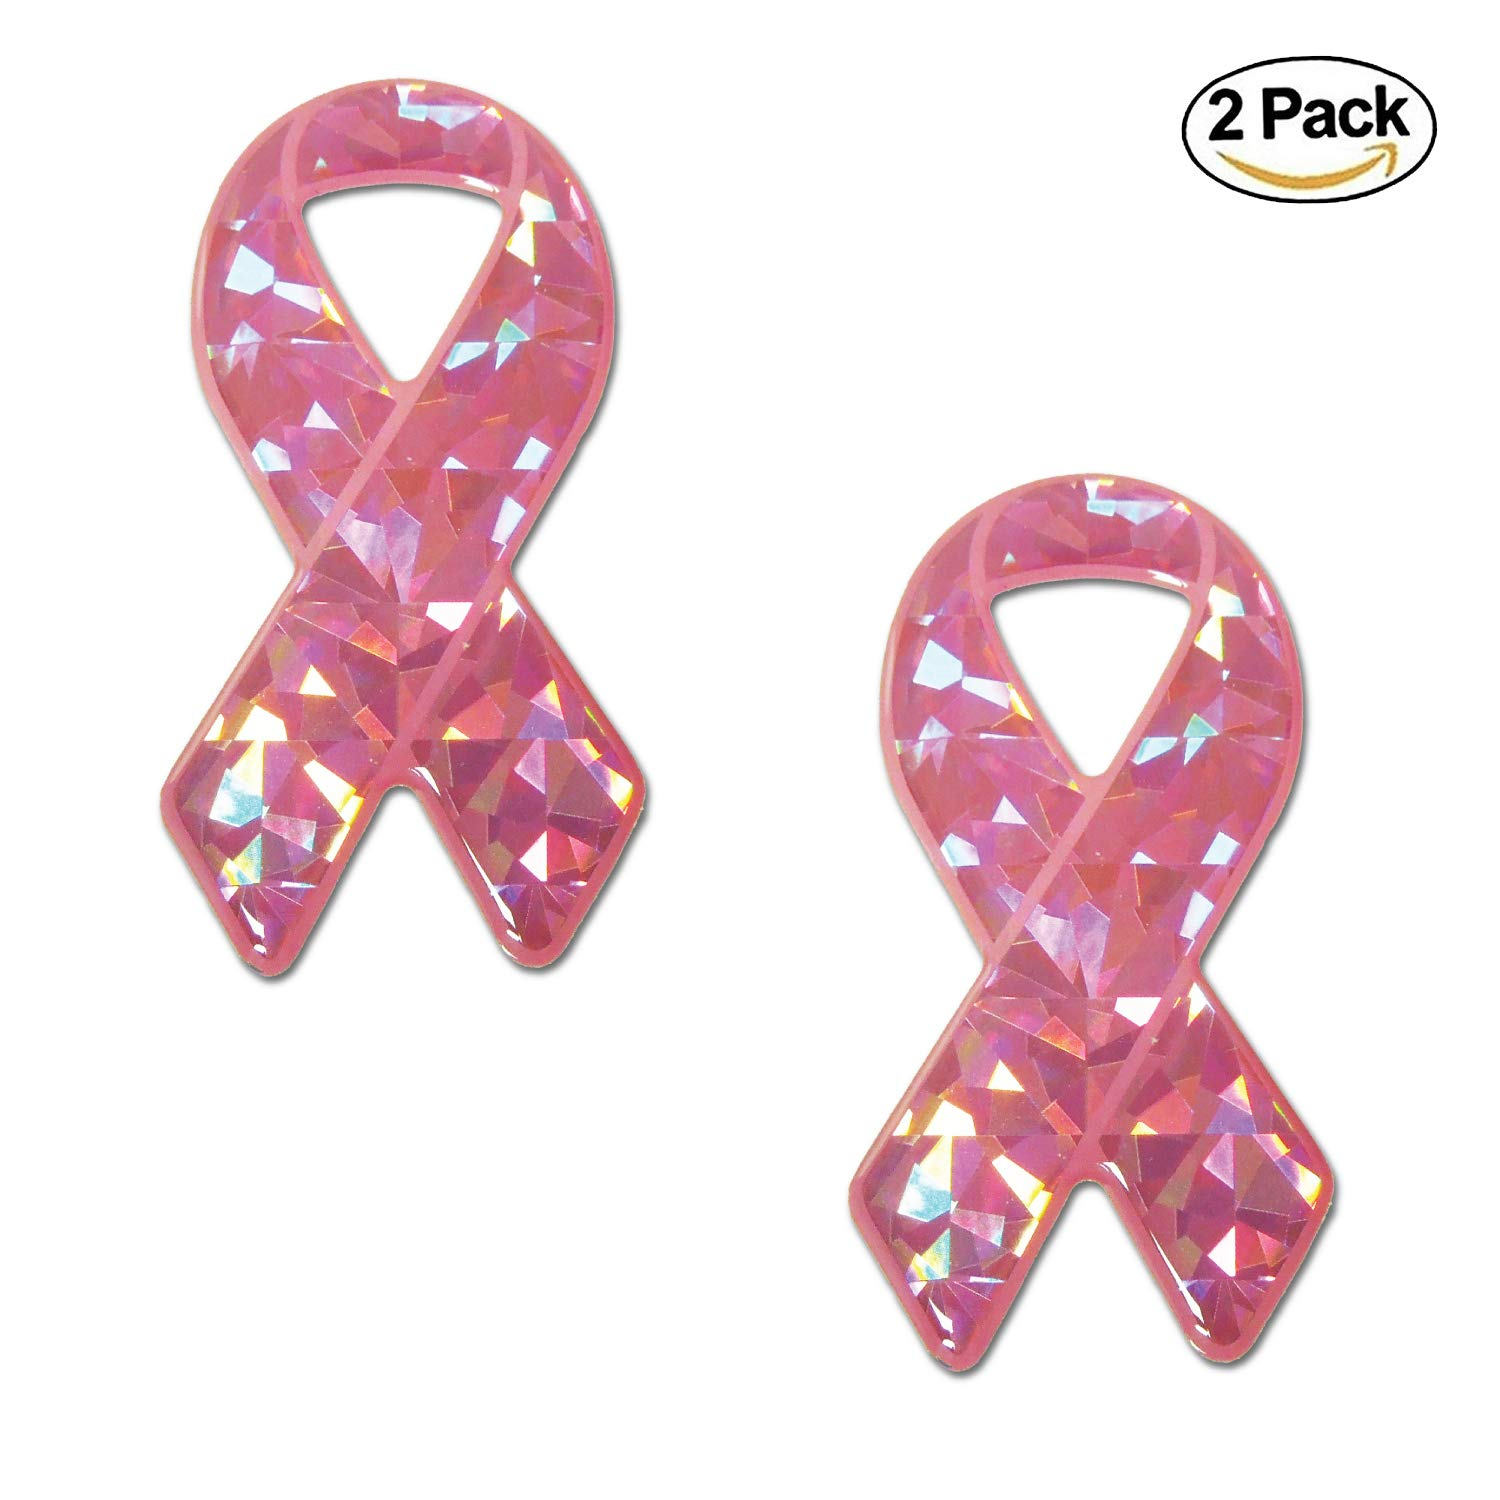 Elektroplate Pink Ribbon Breast Cancer Awareness Support Chrome Auto Emblem